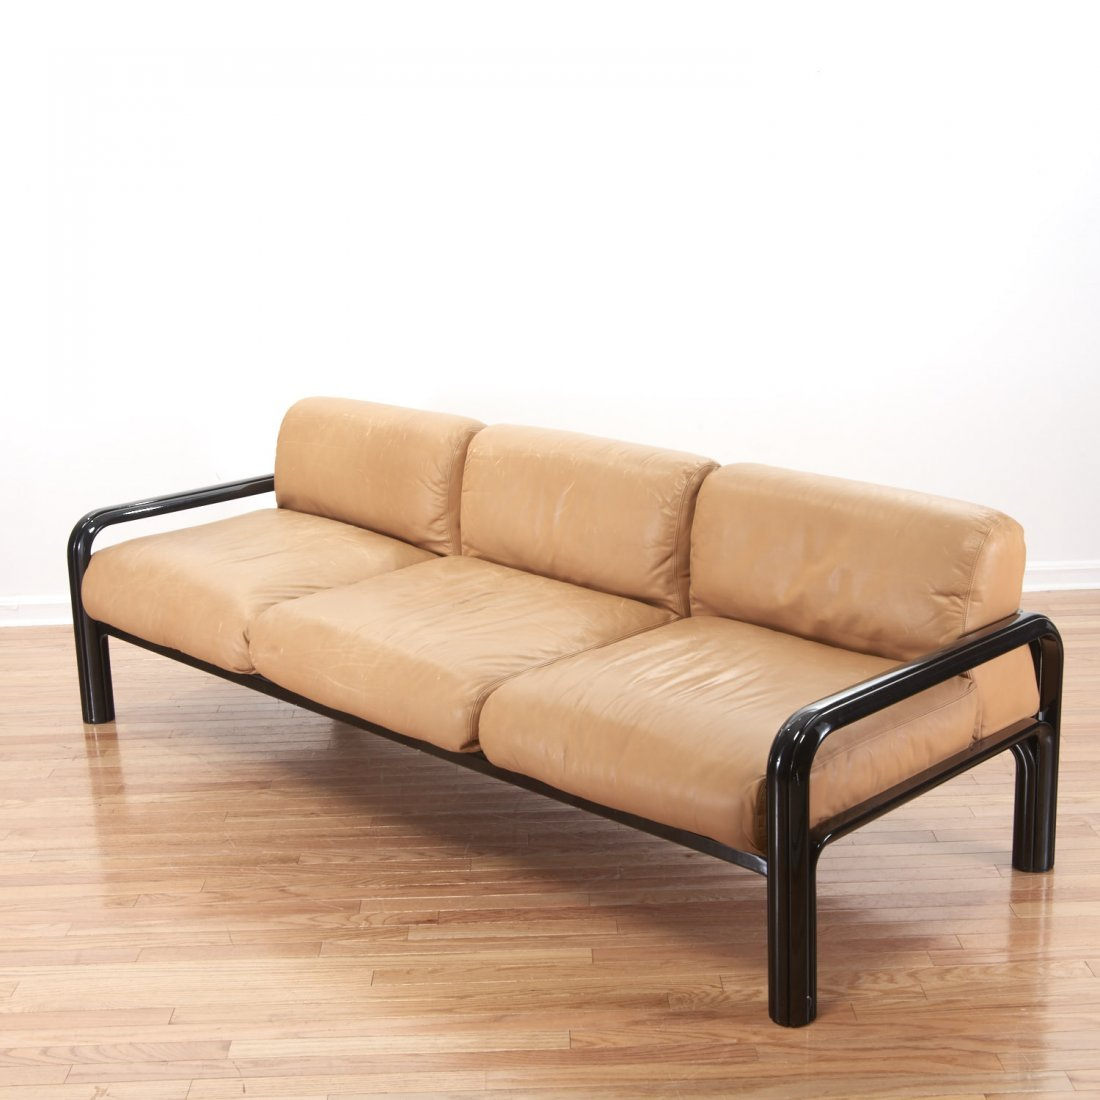 Gae Aulenti for knoll leather sofa - 3